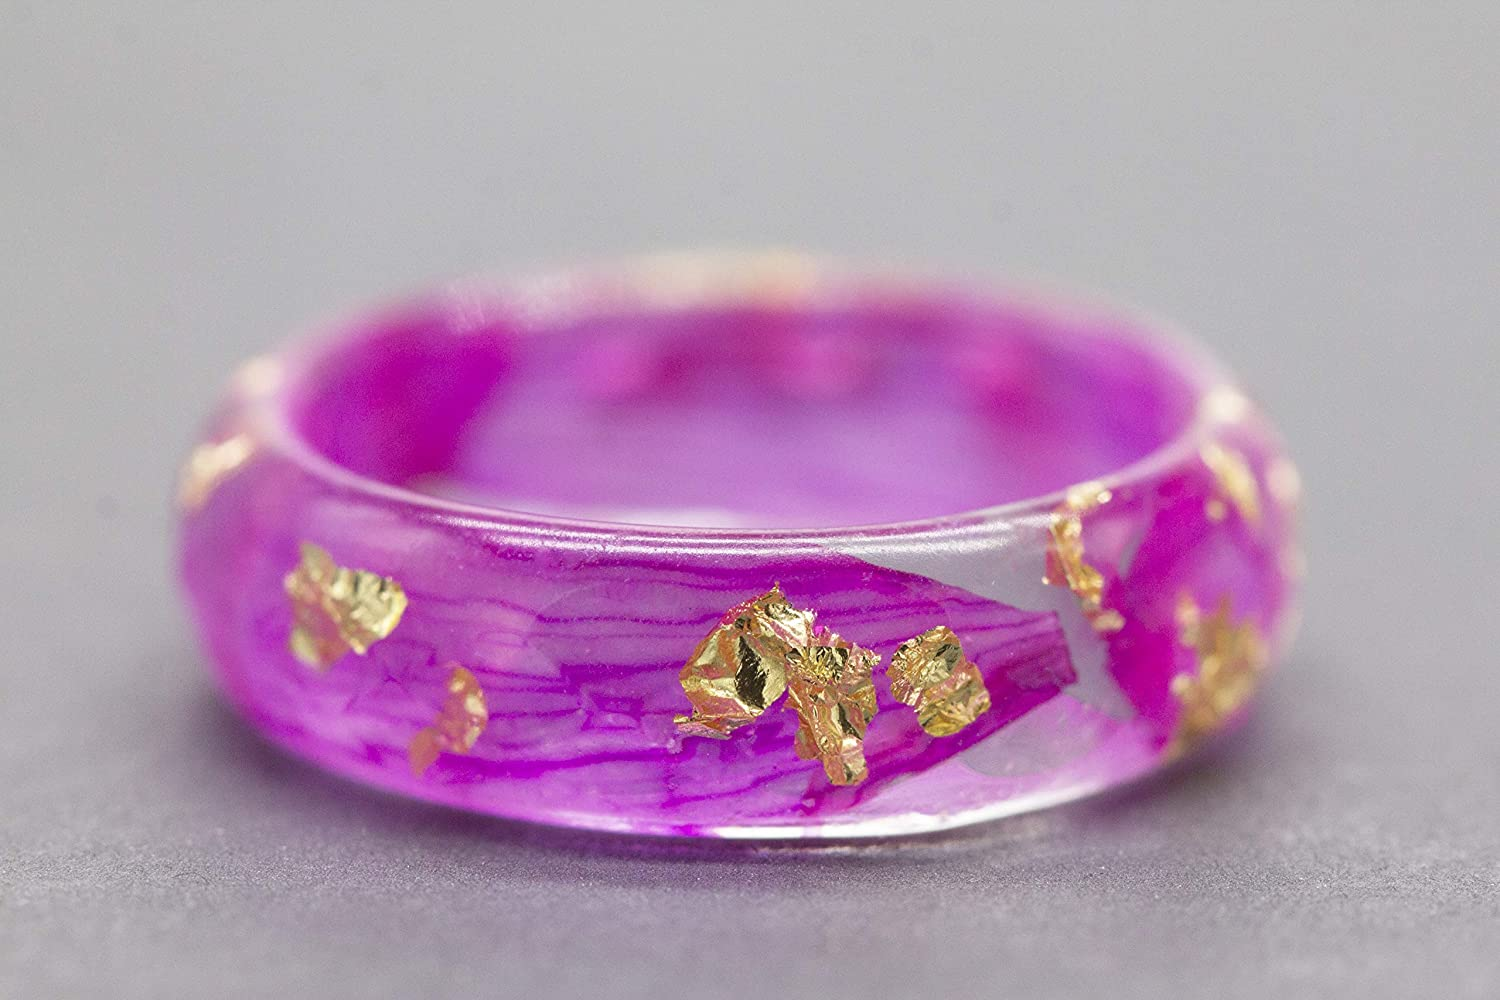 Real Fuchsia Flowers Faceted Resin Ring with Pink Petals and Gold Flakes